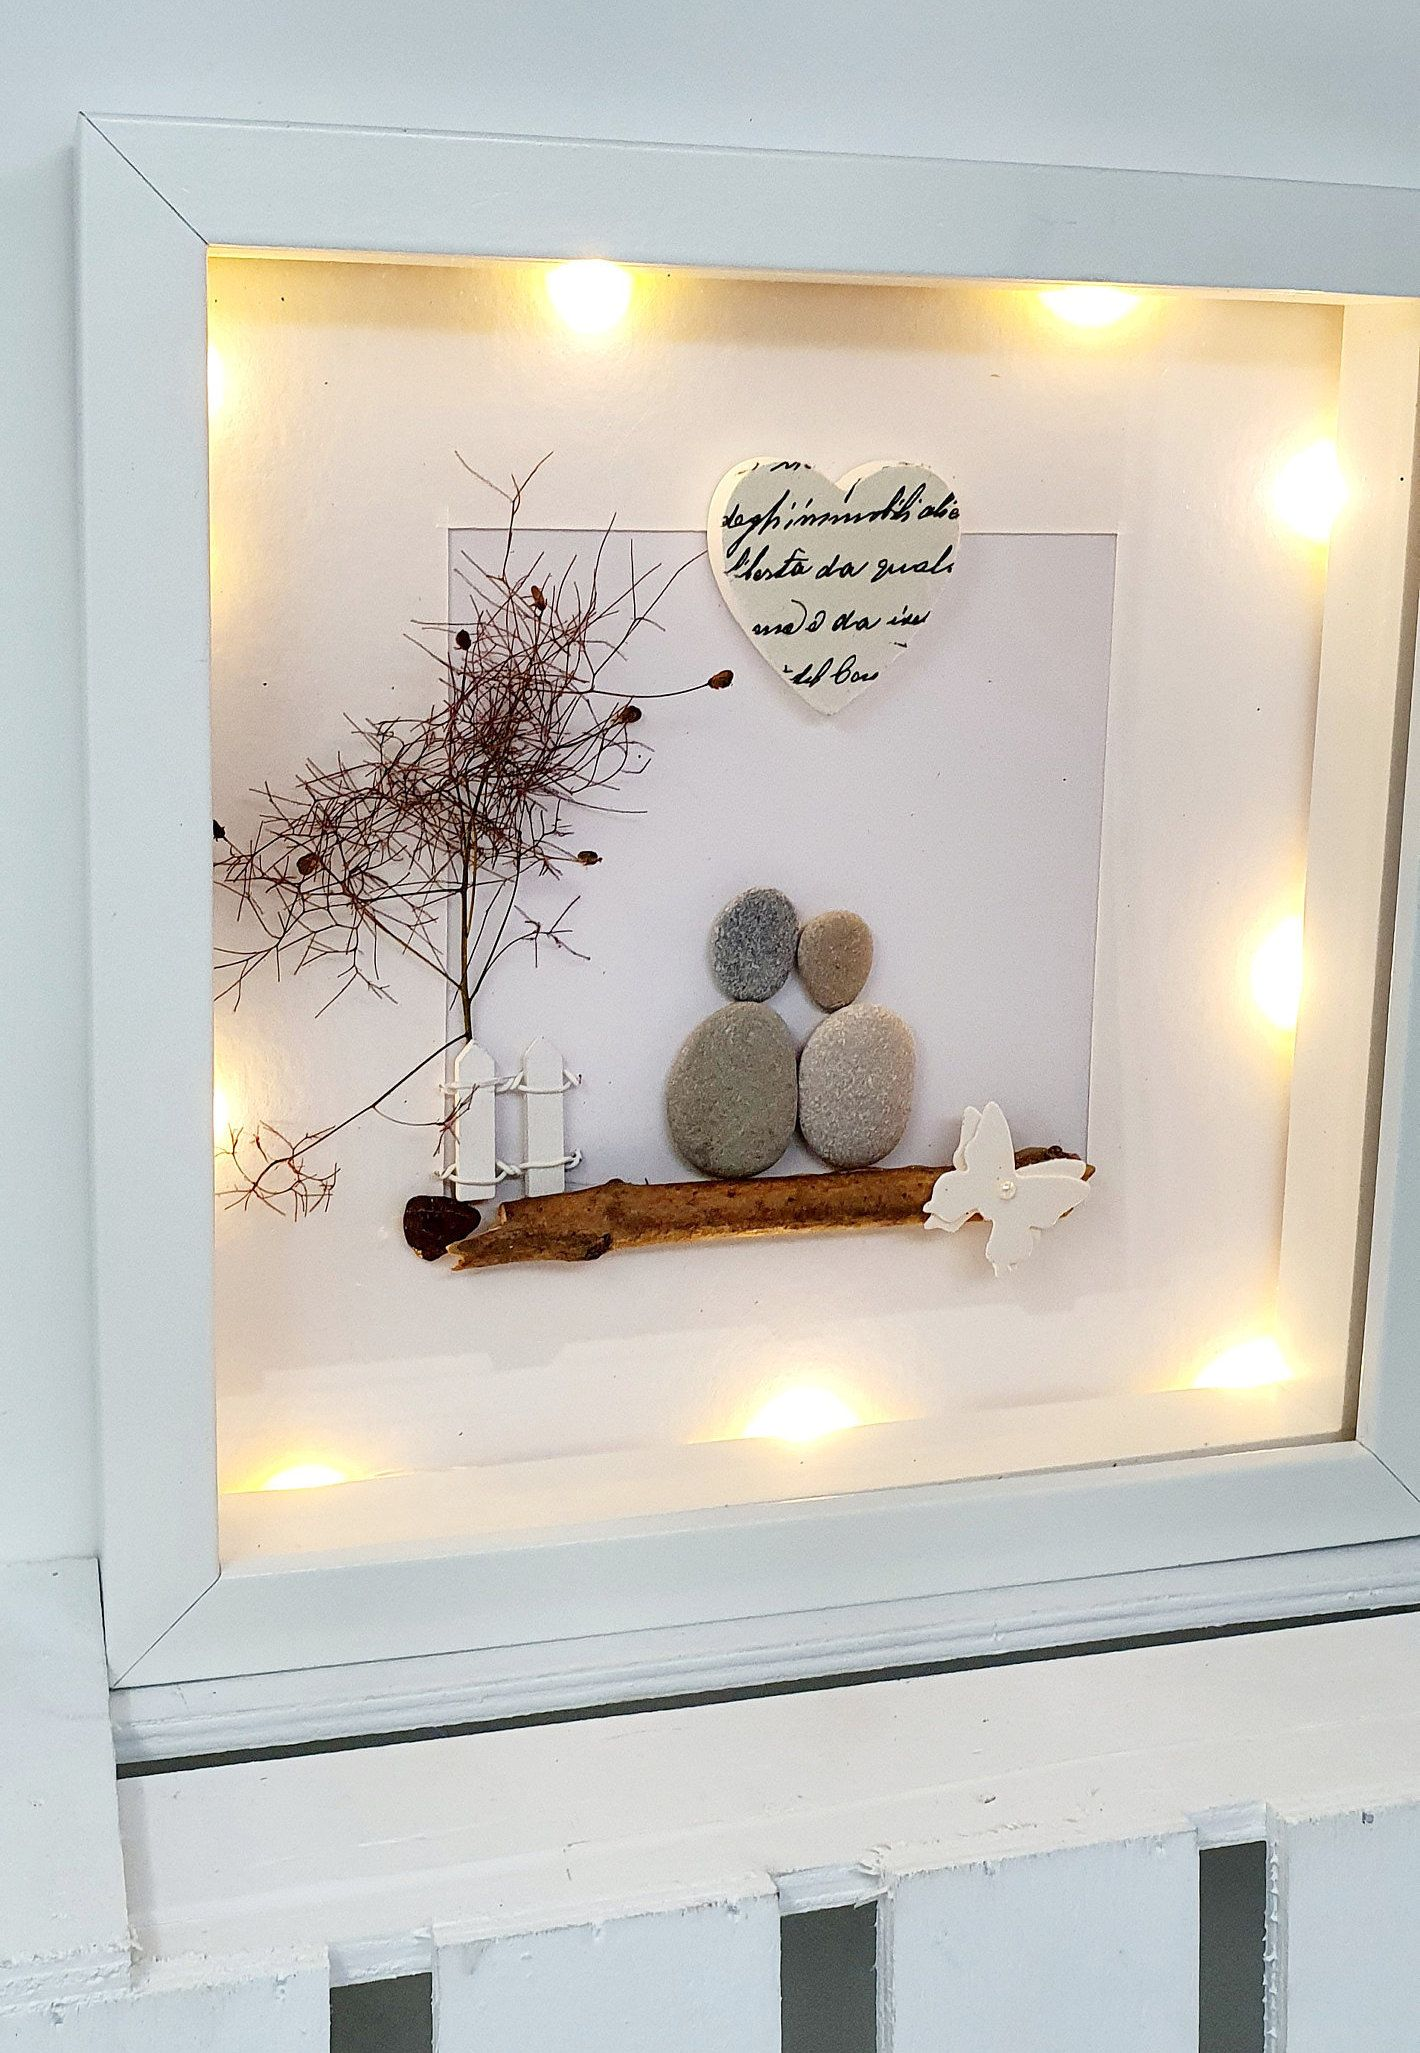 Gift Paper Wedding 1st Wedding Anniversary 1st Anniversary Family Picture Couple Pebble Picture Gift Idea Decoration Stone Picture Personalized Anniversary Pictures Diy Anniversary Gift Picture Gifts